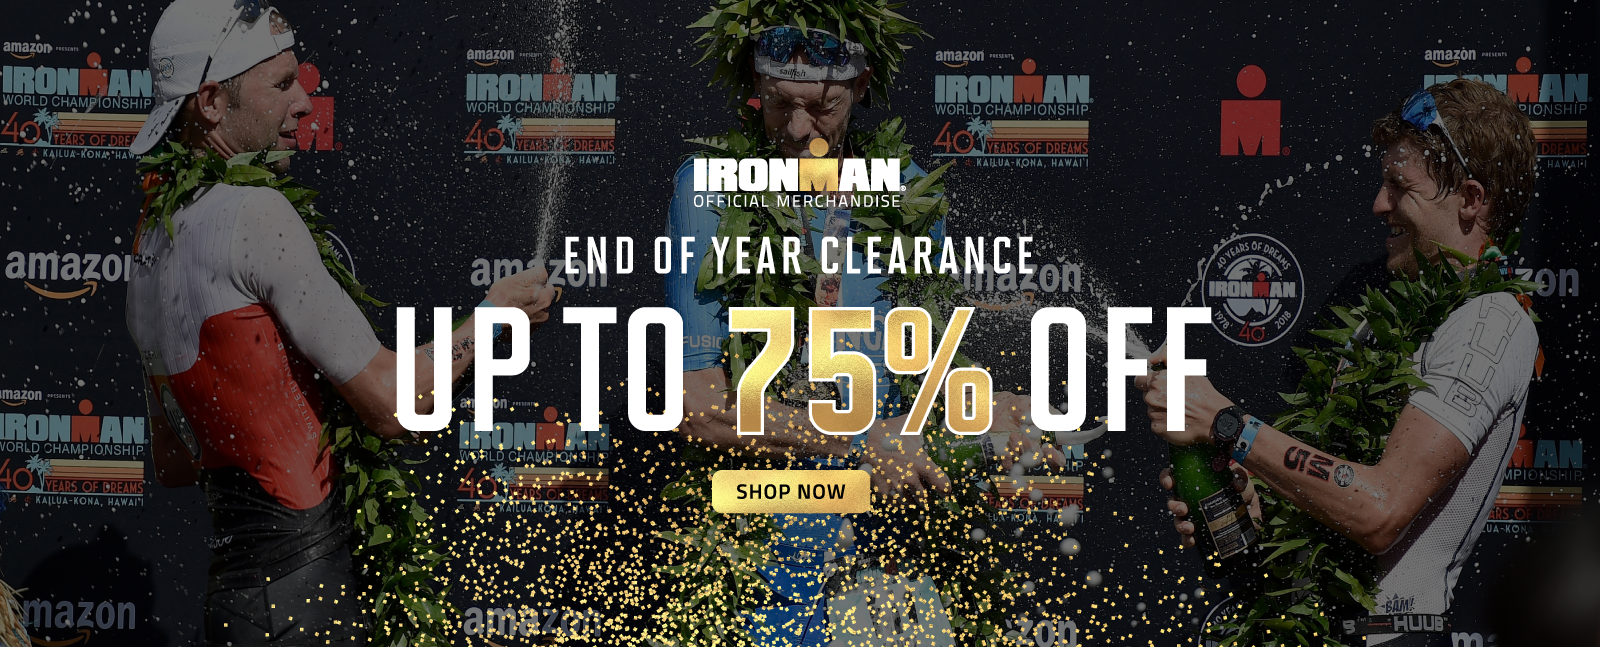 END OF YEAR CLEARANCE UP TO 75% OFF